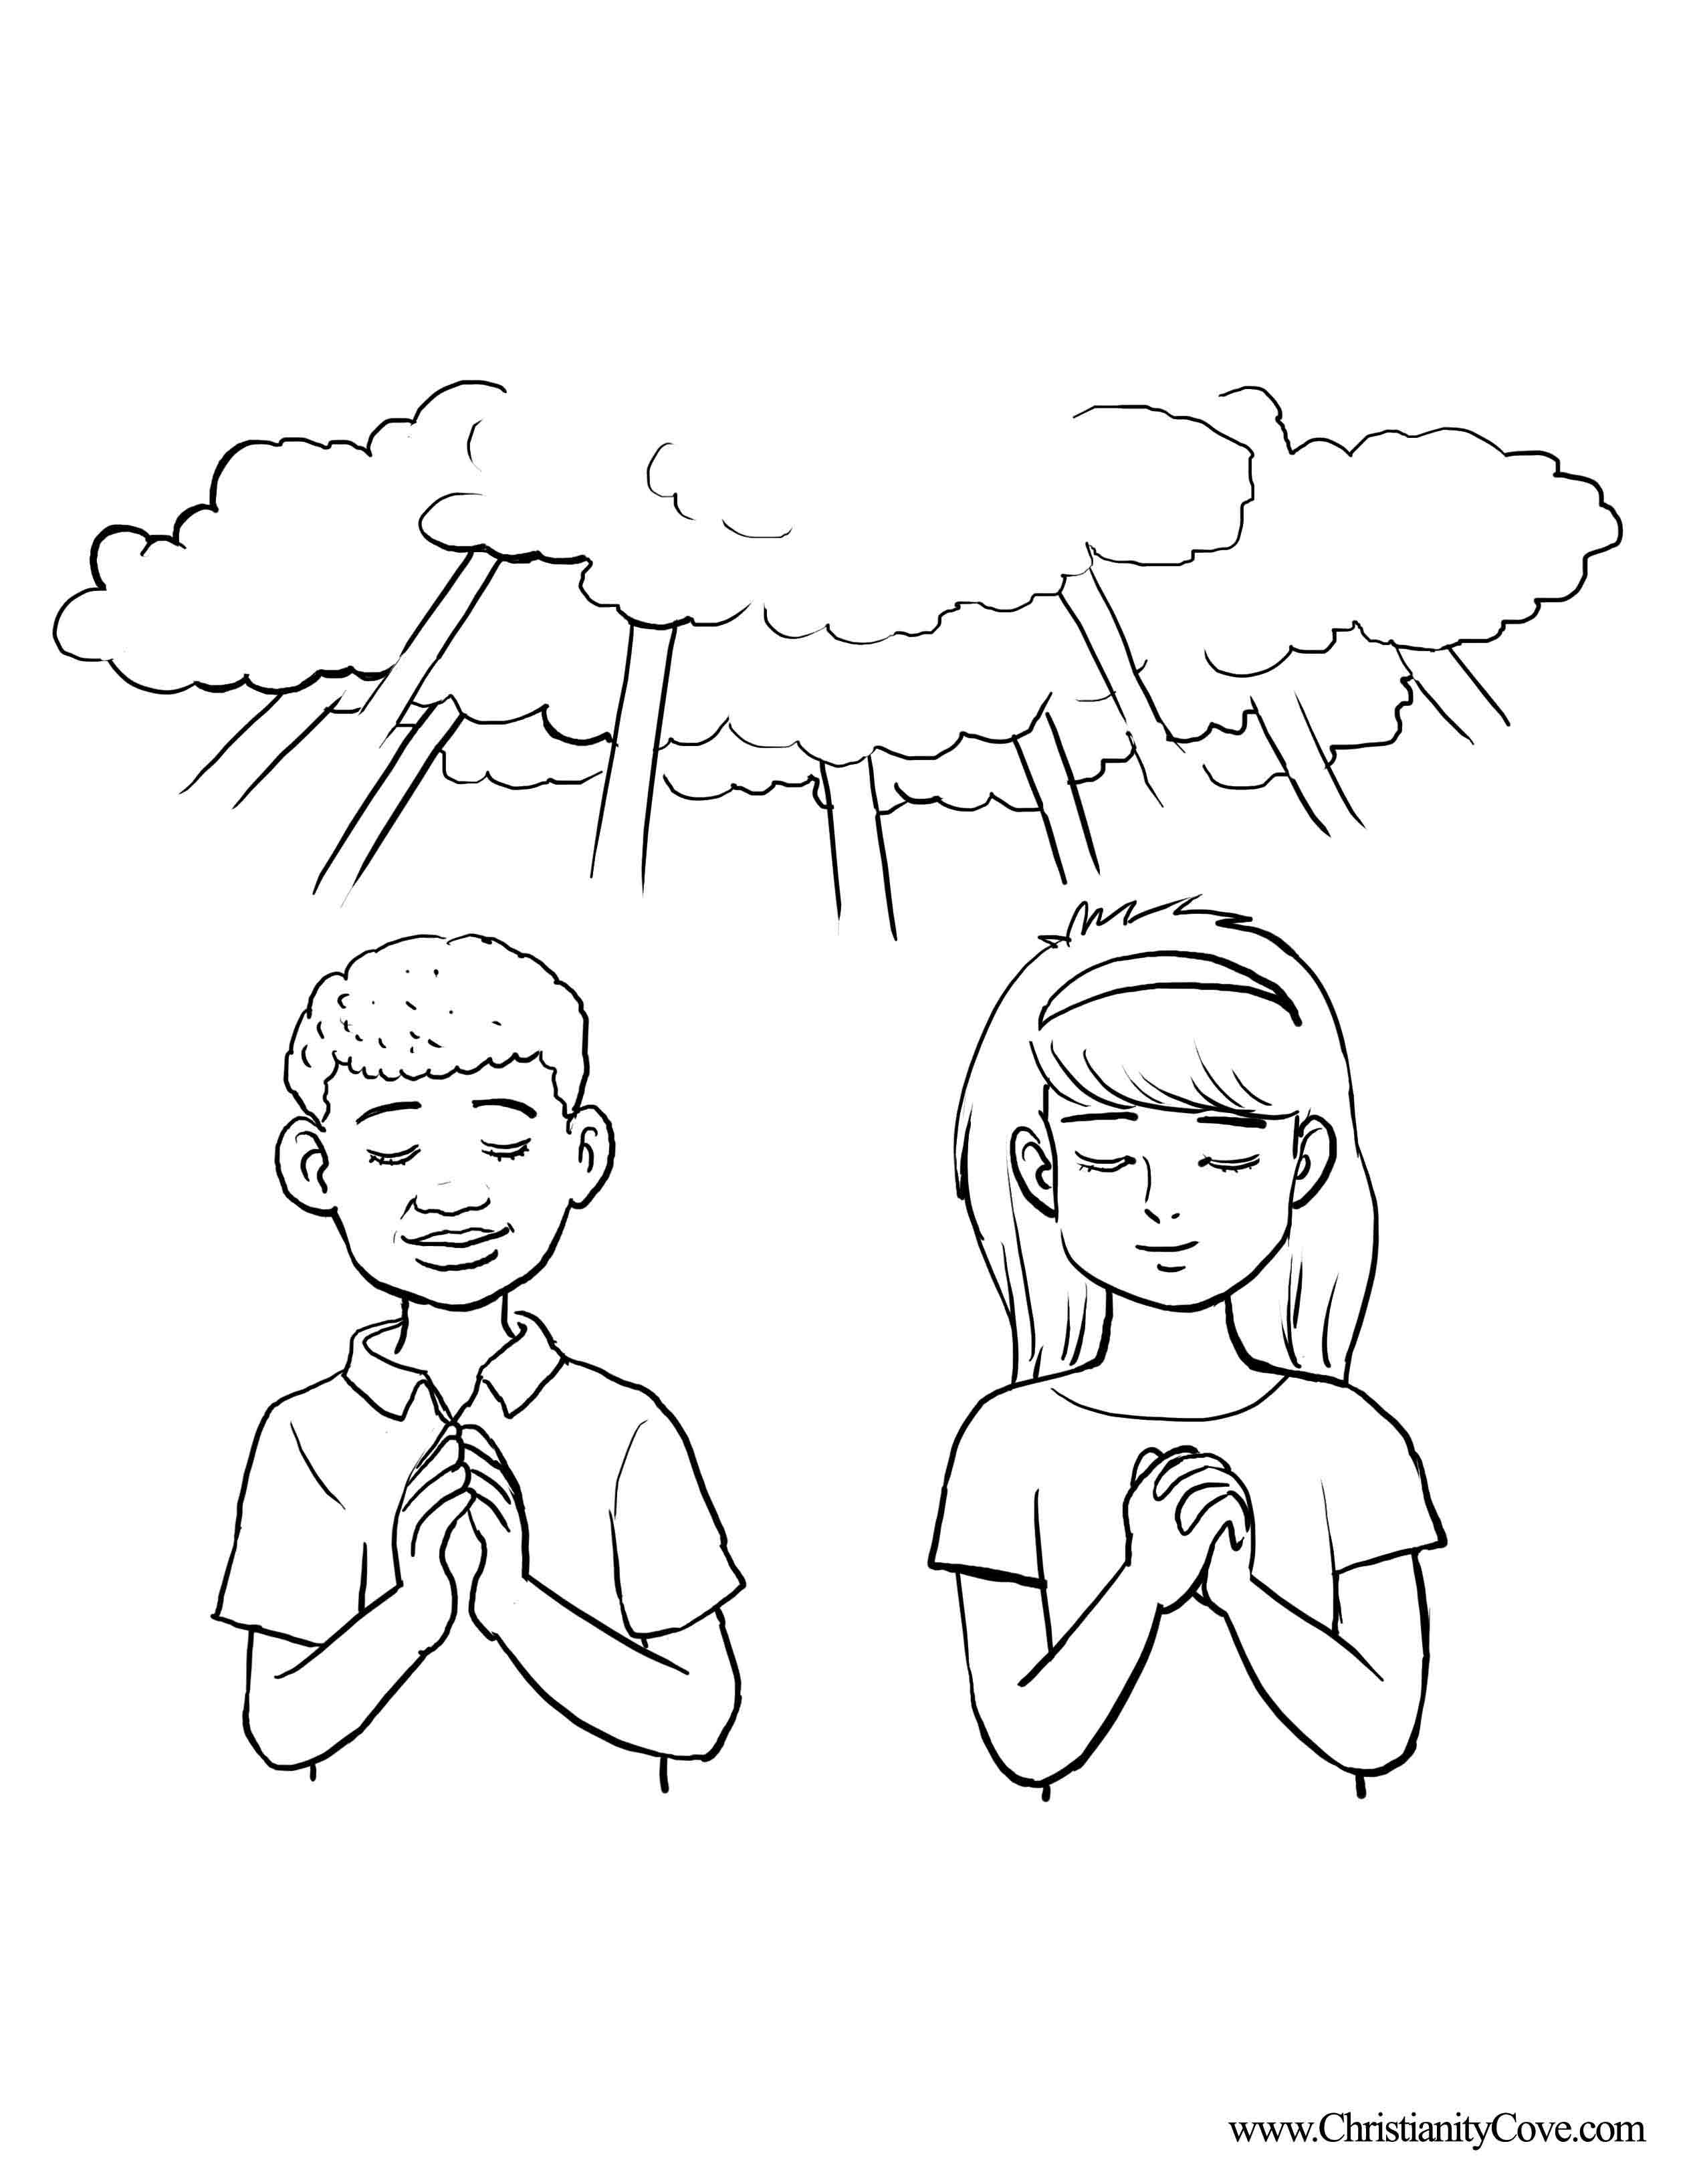 Clip Art Sunday School Coloring Pages For Preschoolers Free prayer coloring page for kids az pages naaman and the servant girl leper sunday free bible school kids